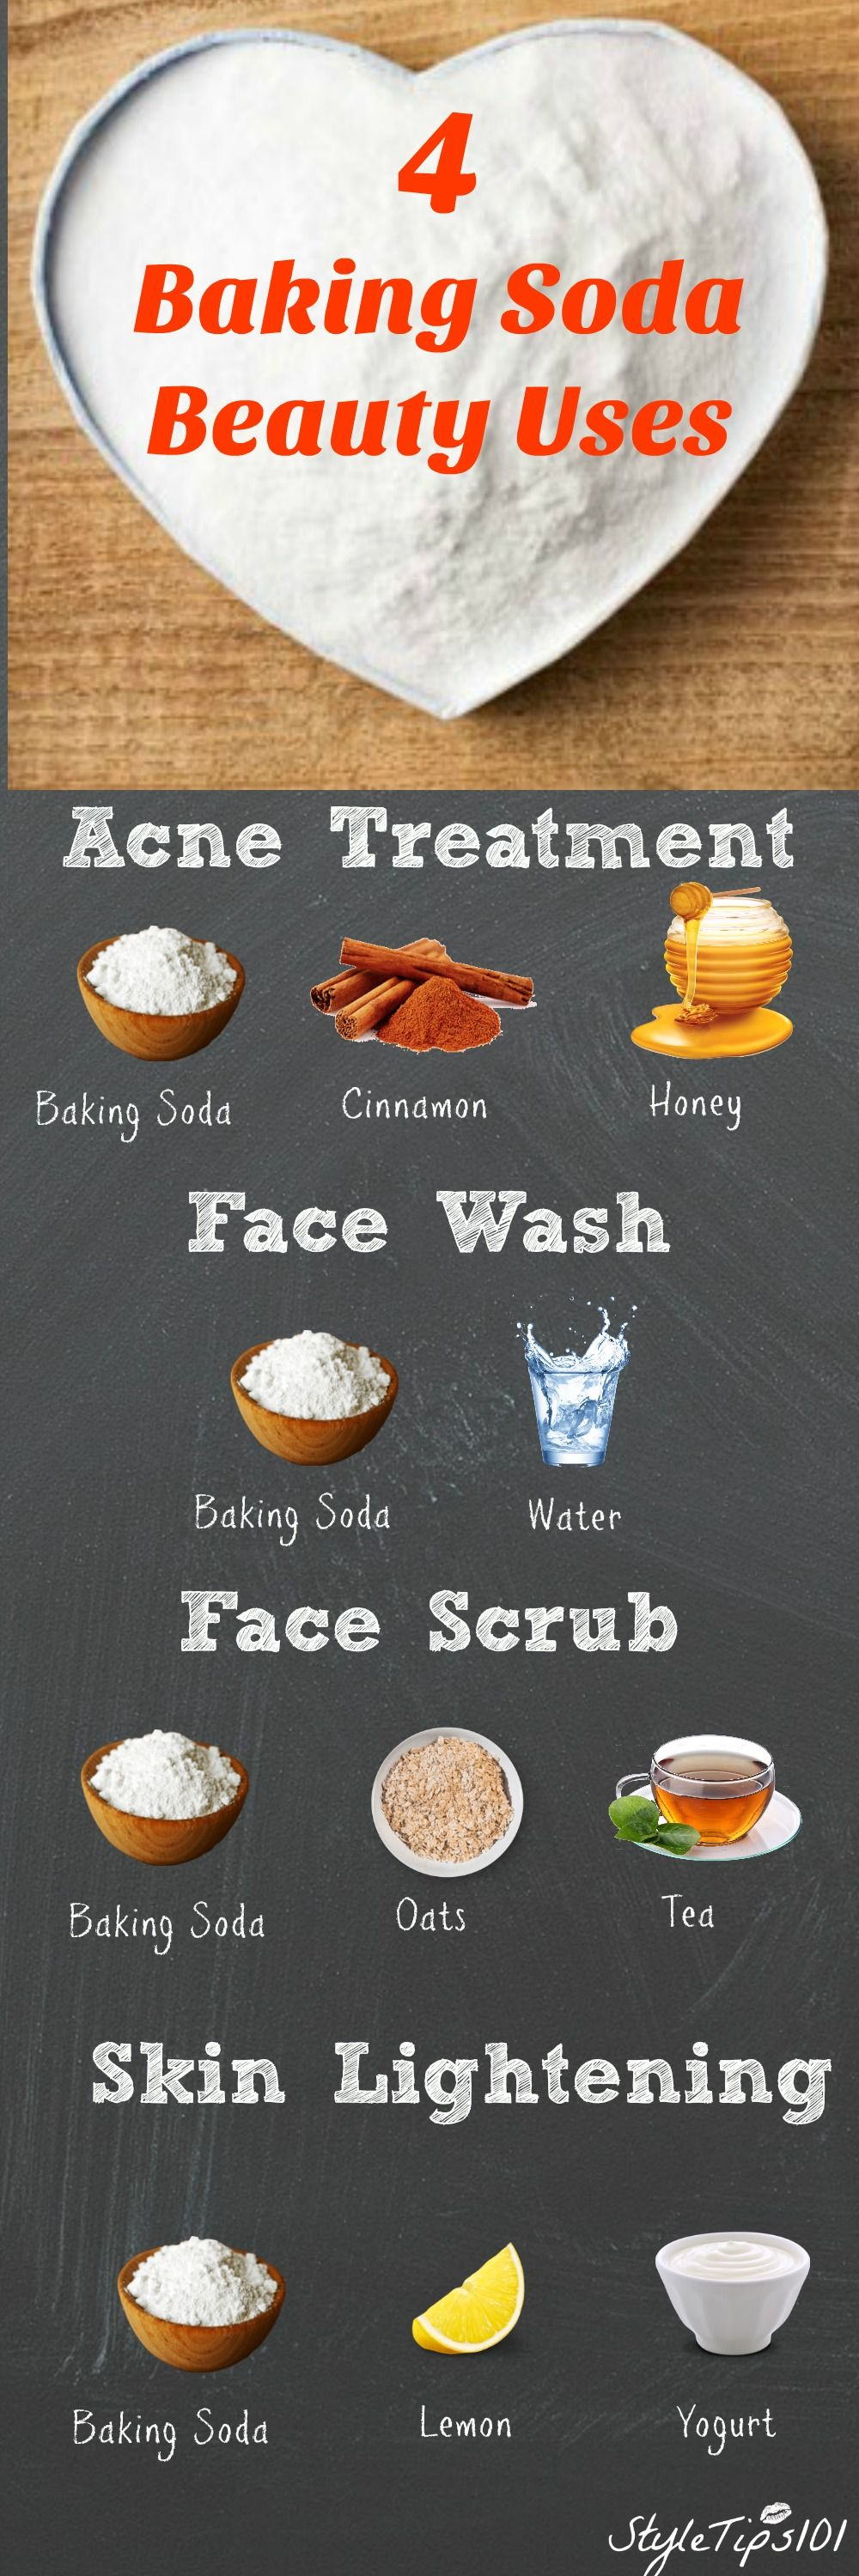 4 Amazing Baking Soda Beauty Uses You Need To Know About Infographic